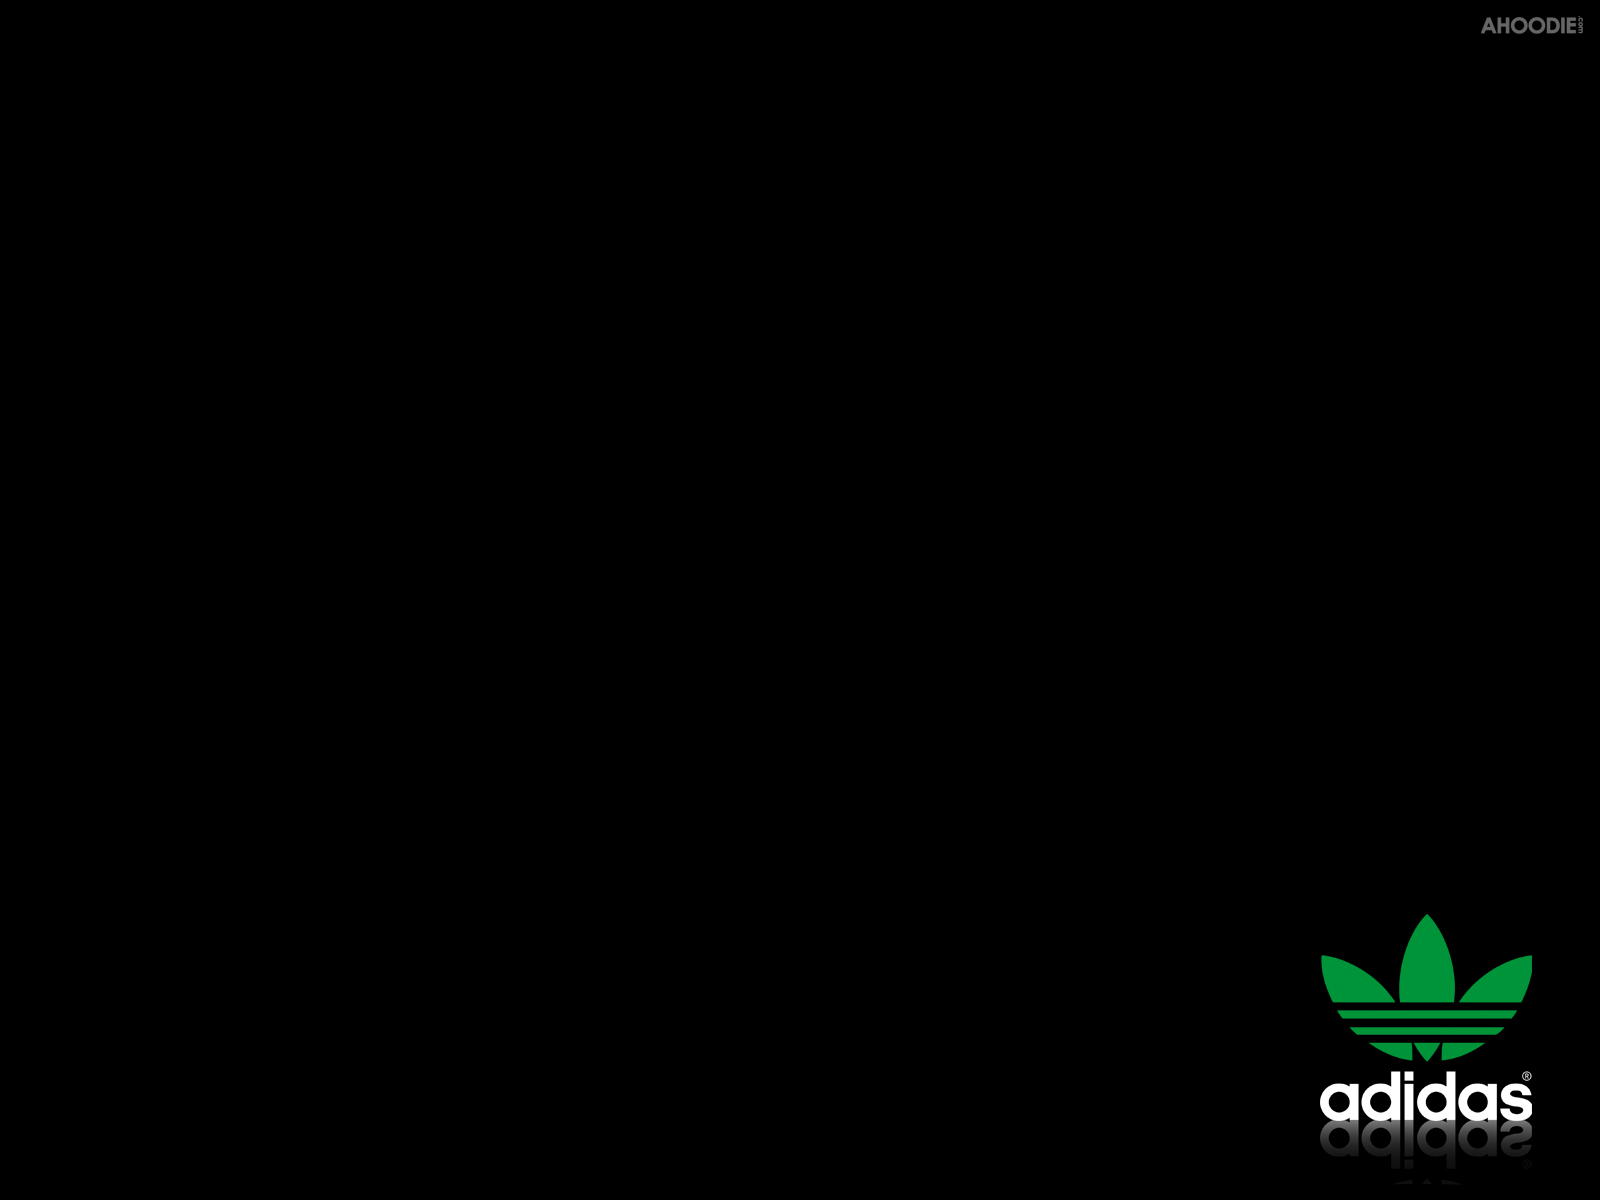 Adidas Wallpaper Iphone 5 ImageBankbiz 1600x1200